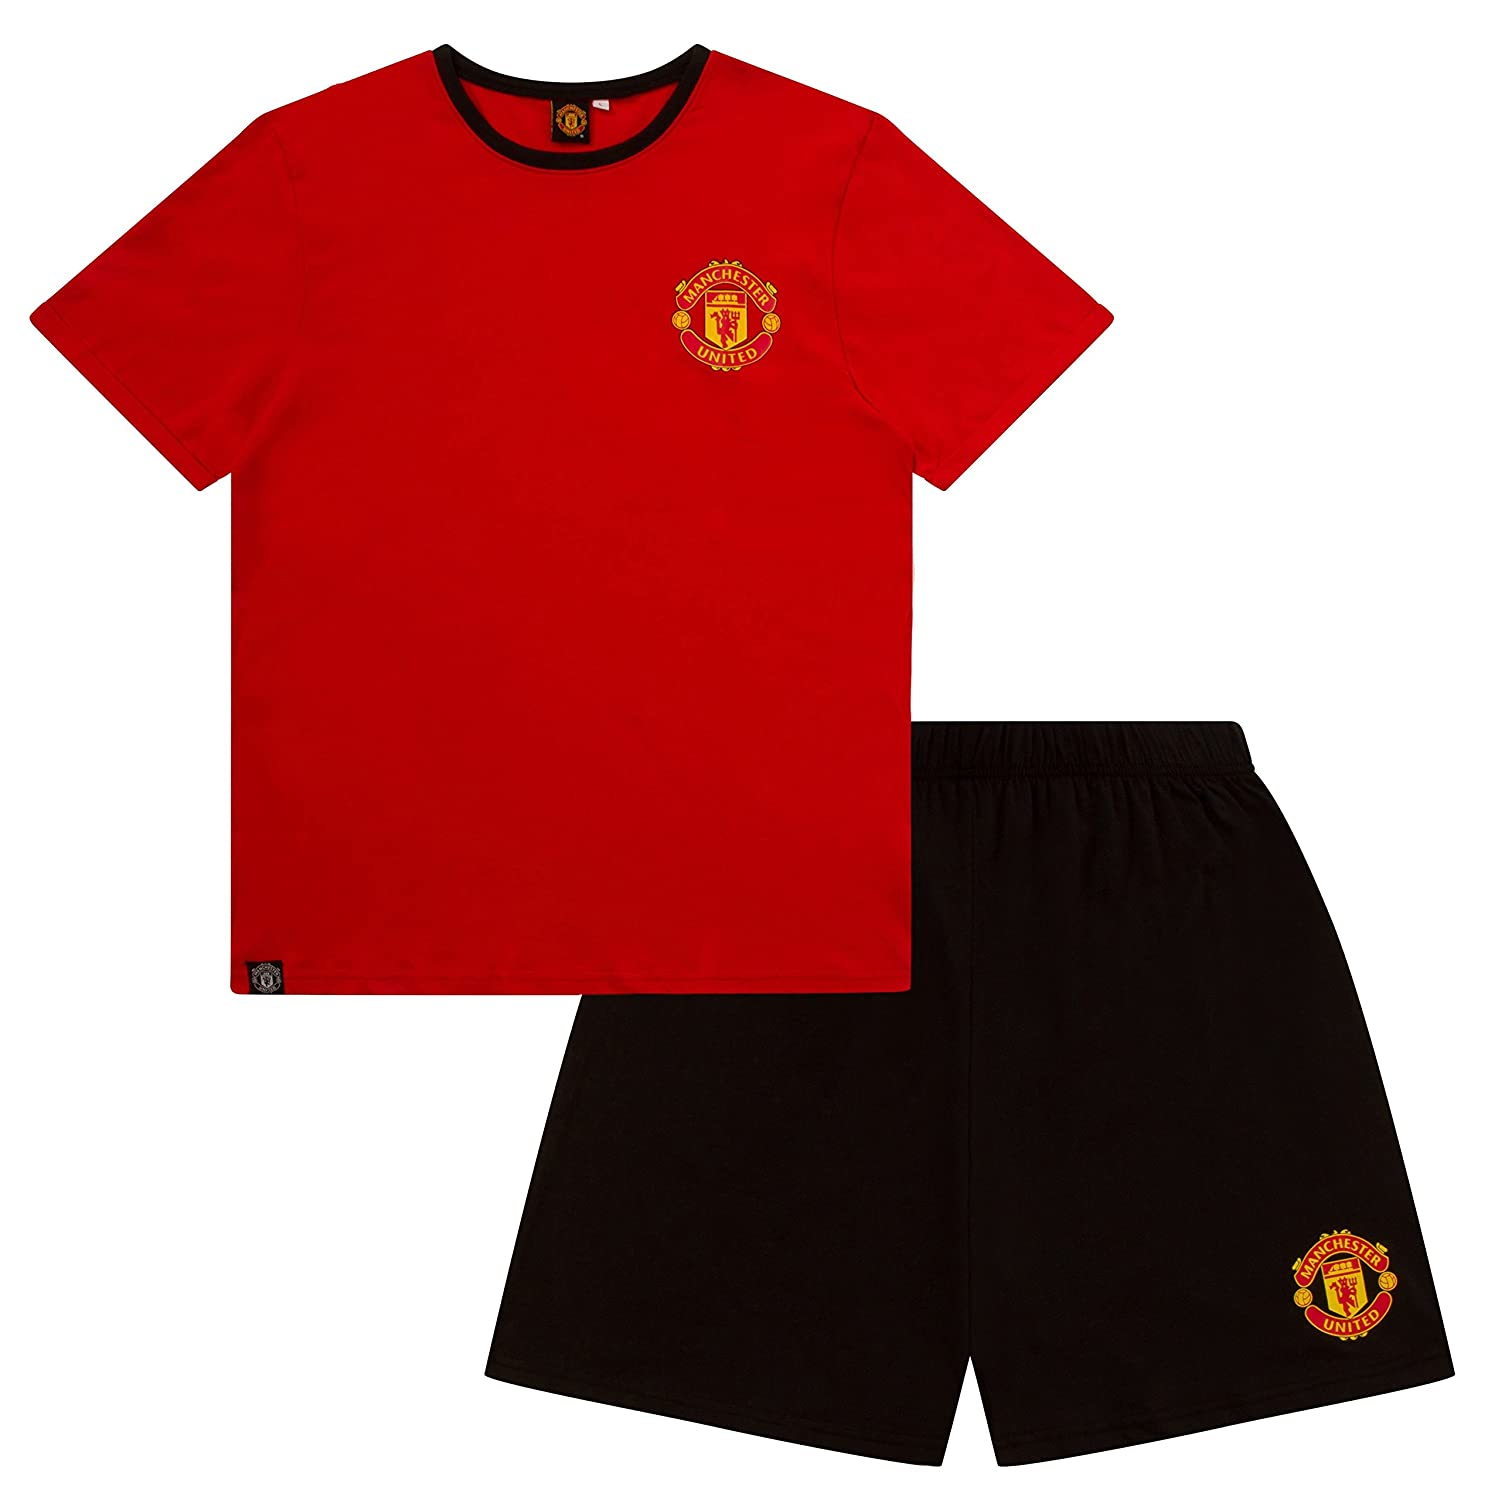 Mens Official Manchester United FC Short Pyjamas MUFC Men's Football Club Pajamas